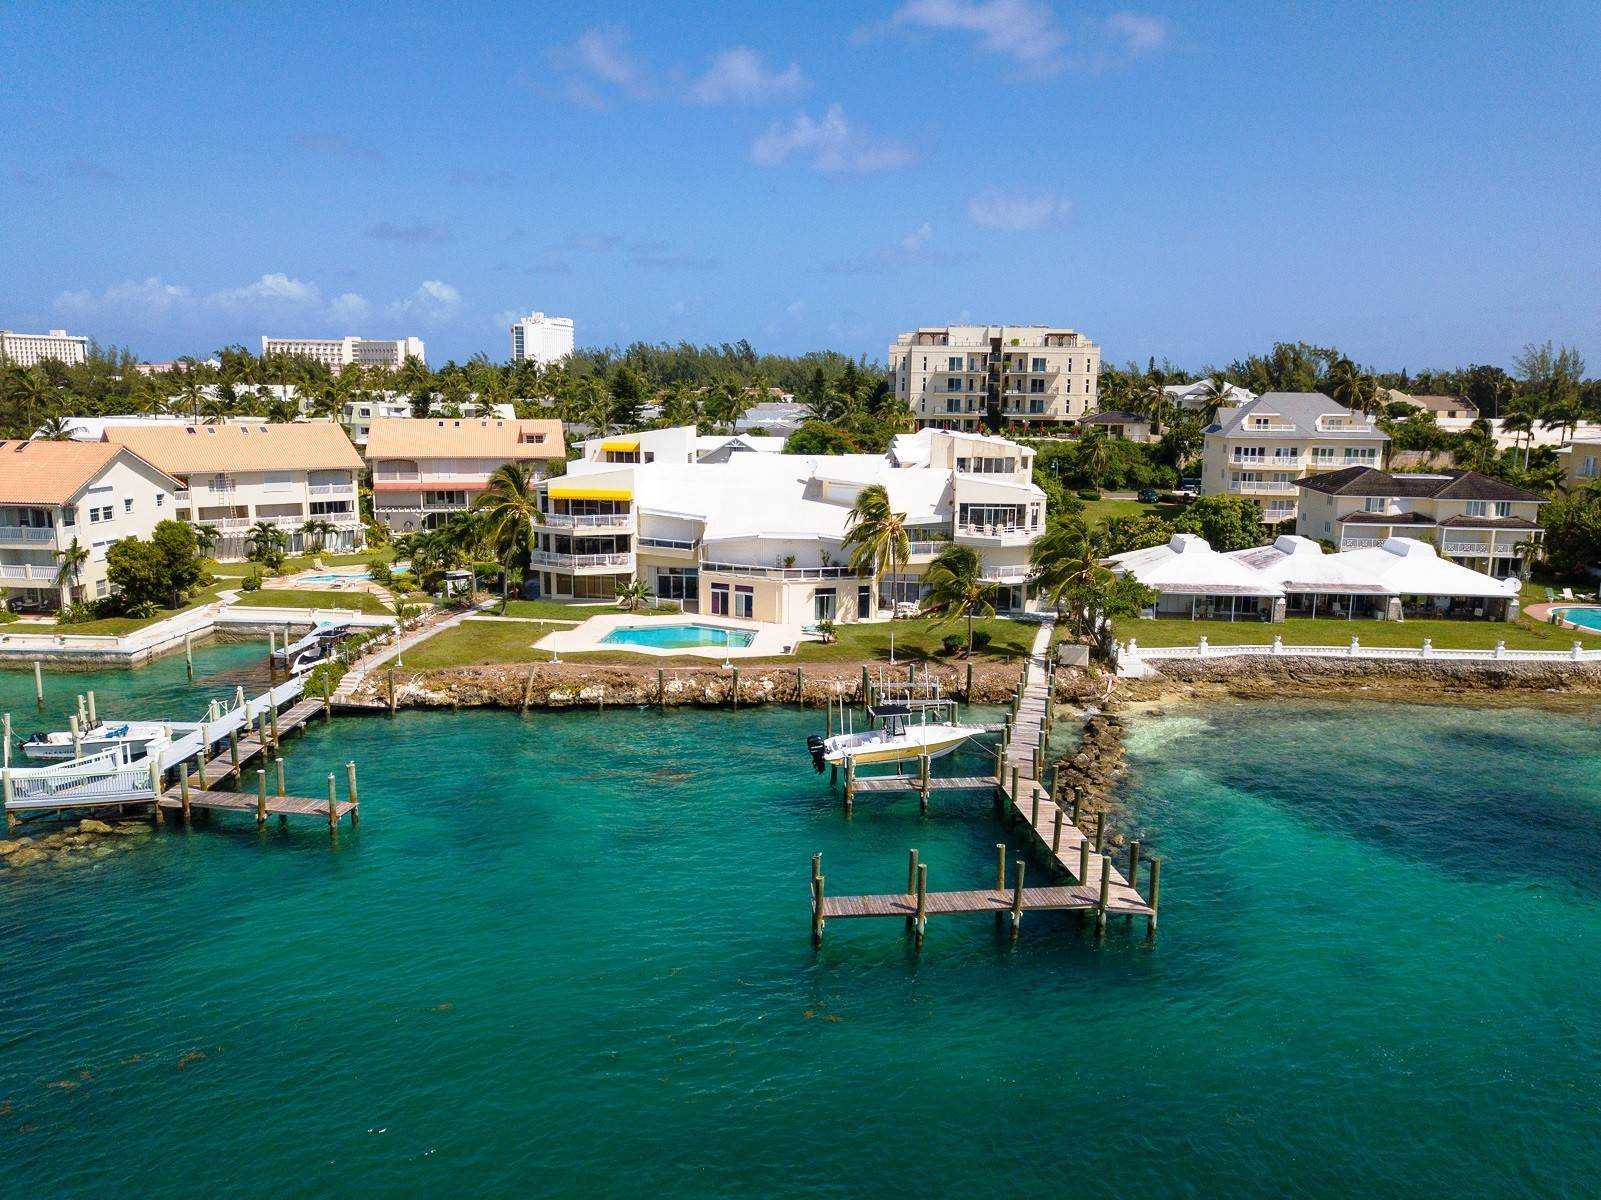 Co-op / Condo for Sale at Fantastic Harbour Condo with Motorized Dock Slip, Pool Ground Level! - MLS 42266 Nassau Harbour, Paradise Island, Nassau And Paradise Island Bahamas